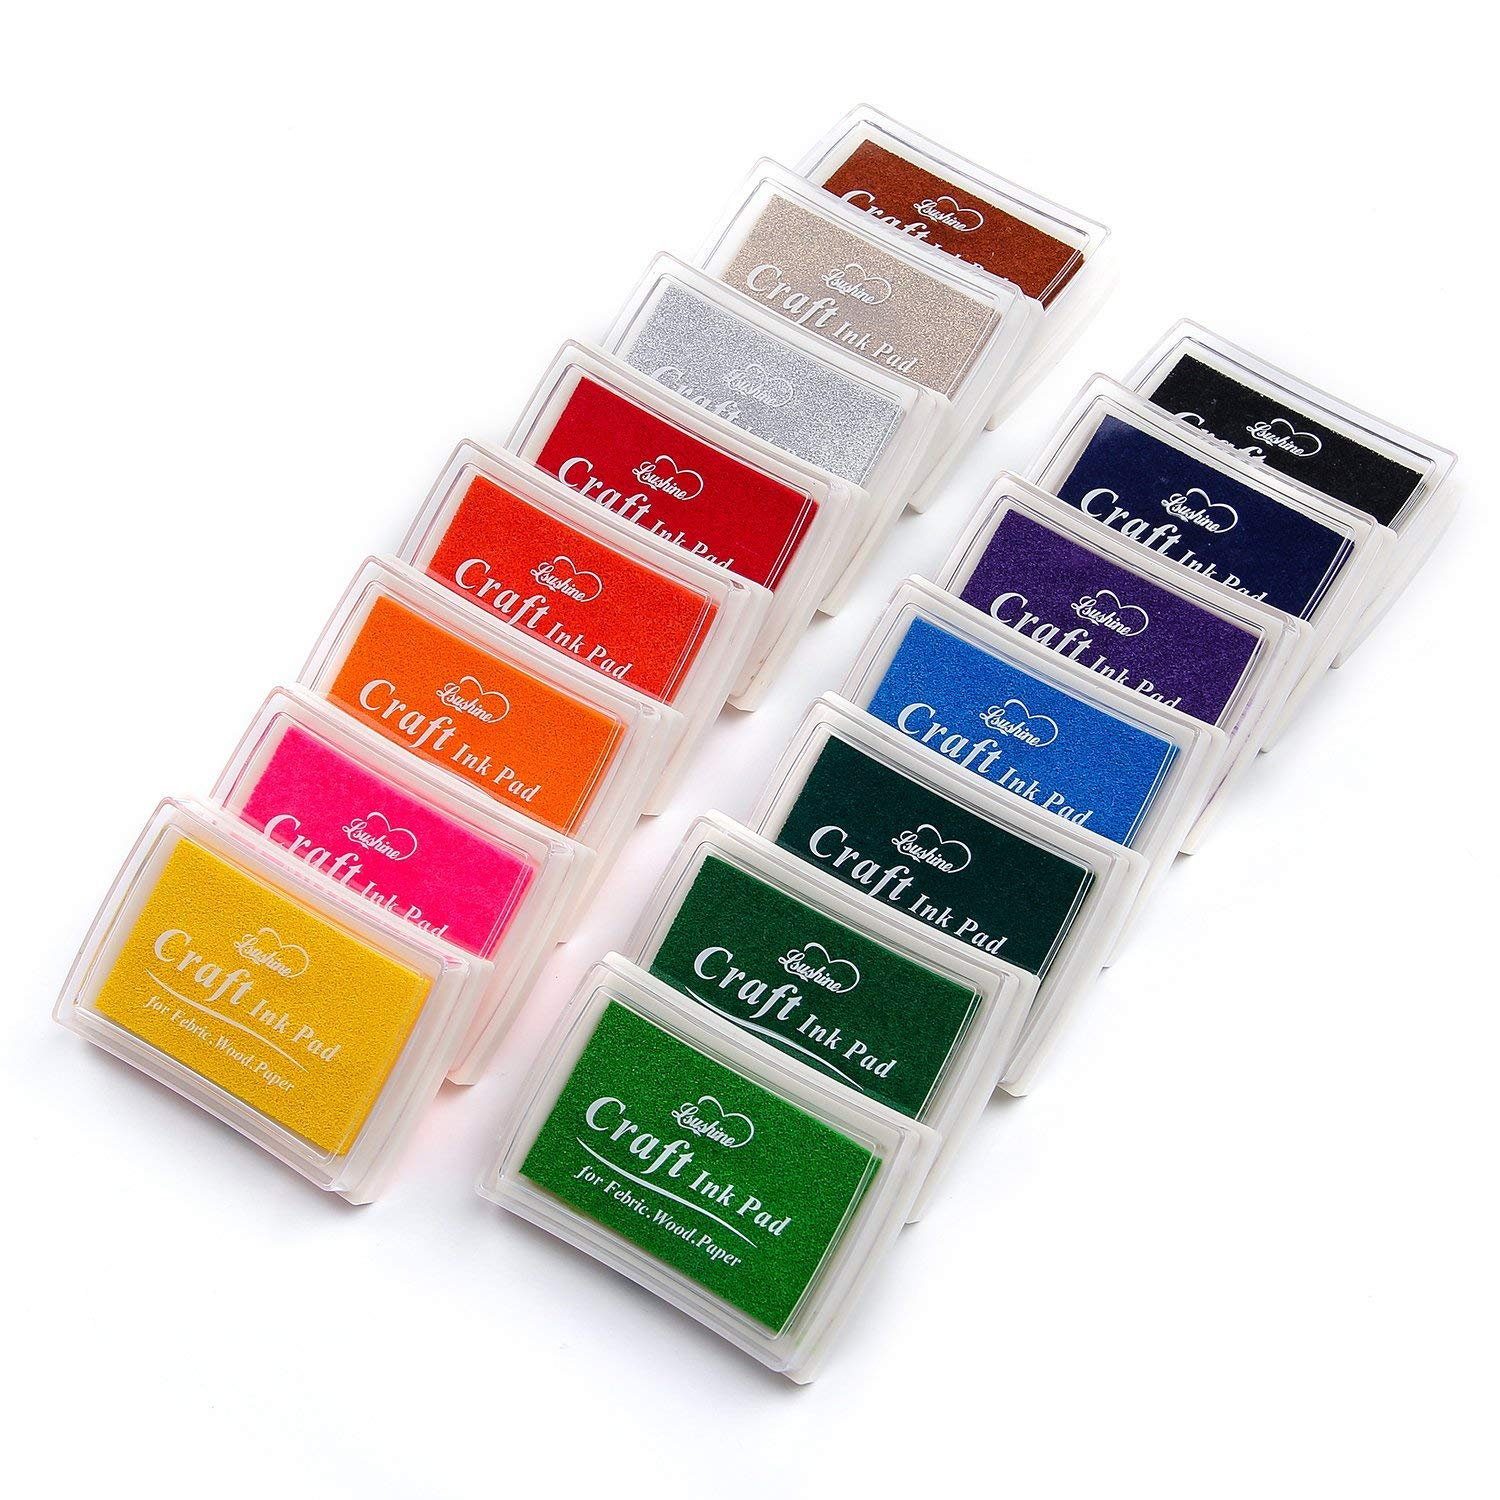 Craft Stamps GeMoor 15 Colors Ink Pads For Use With Any Rubber Art